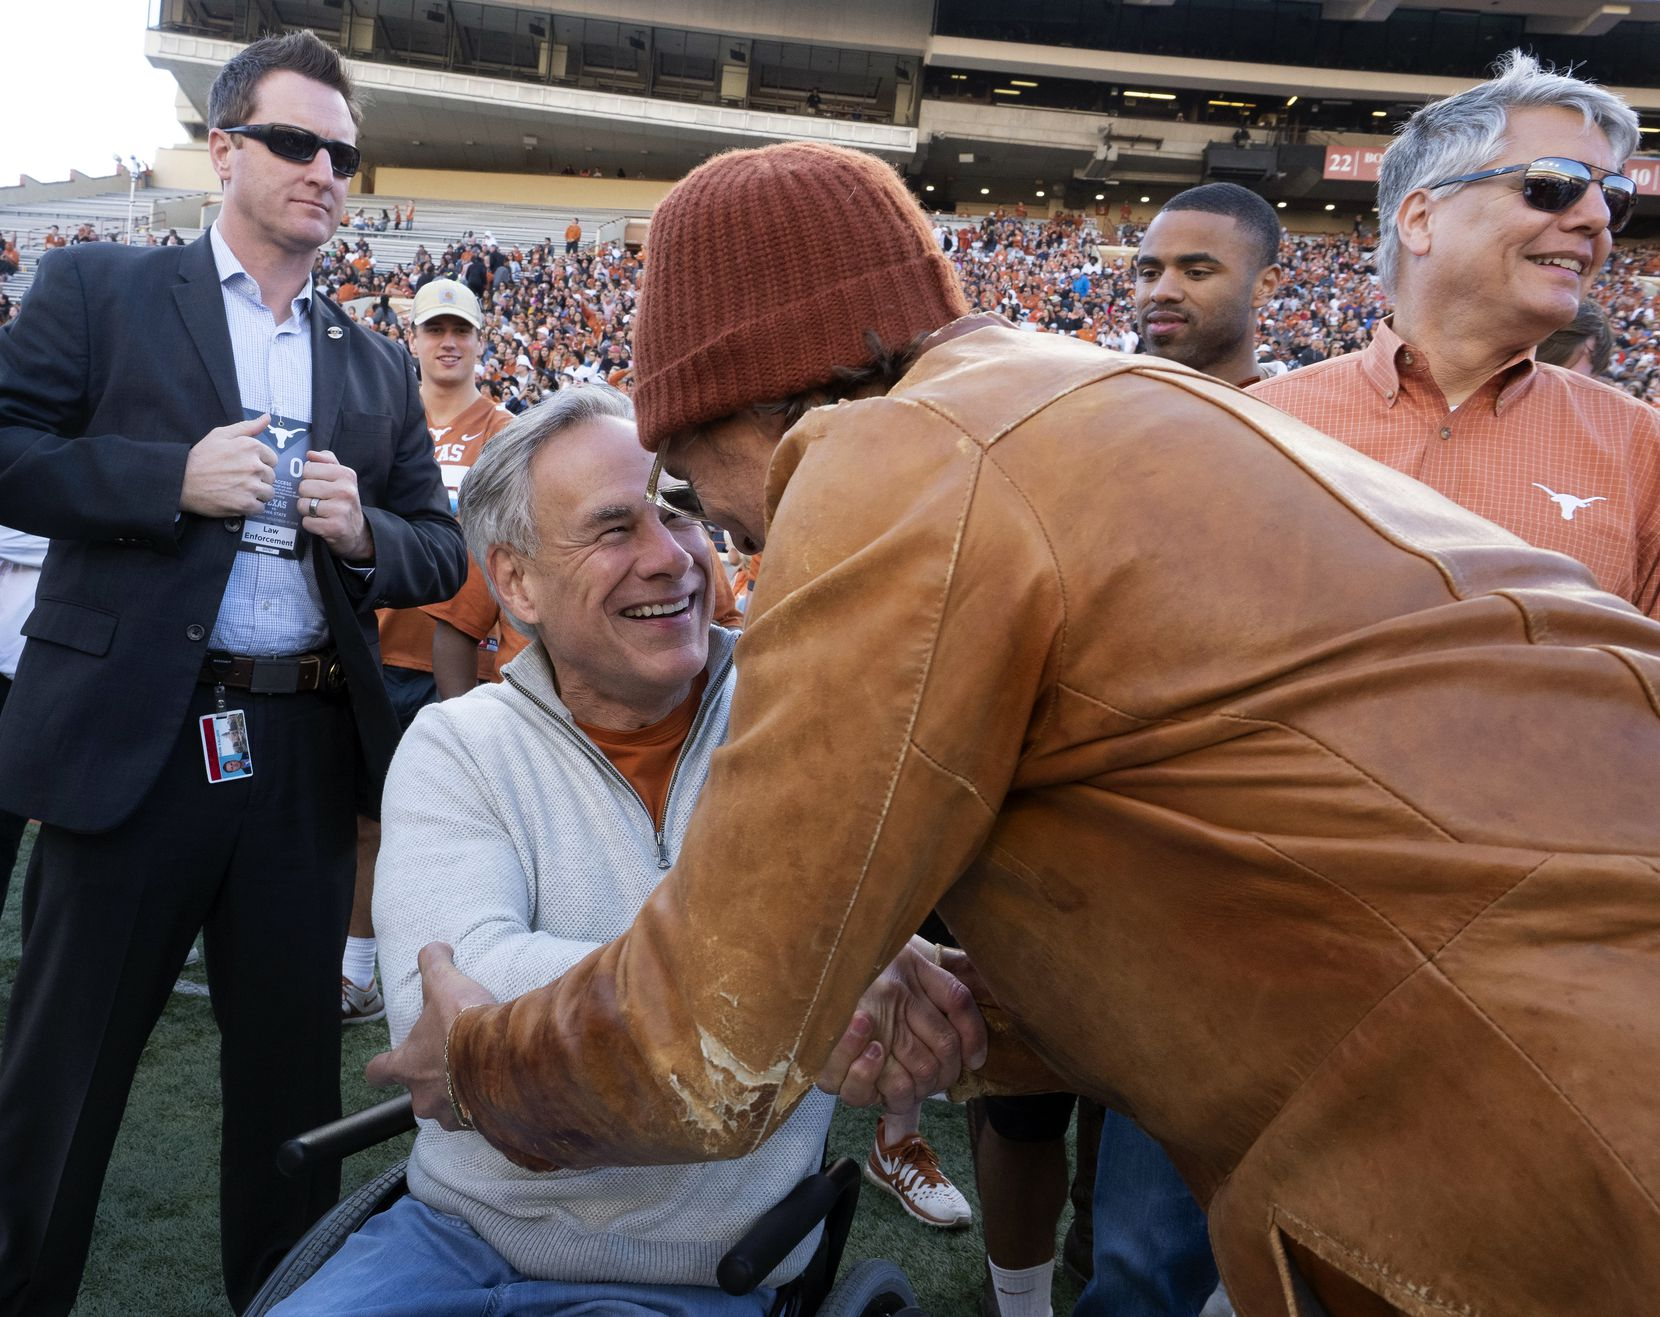 Matthew McConaughey greeted Gov. Greg Abbott at an April 2019 University of Texas Orange and White spring football game in Austin.